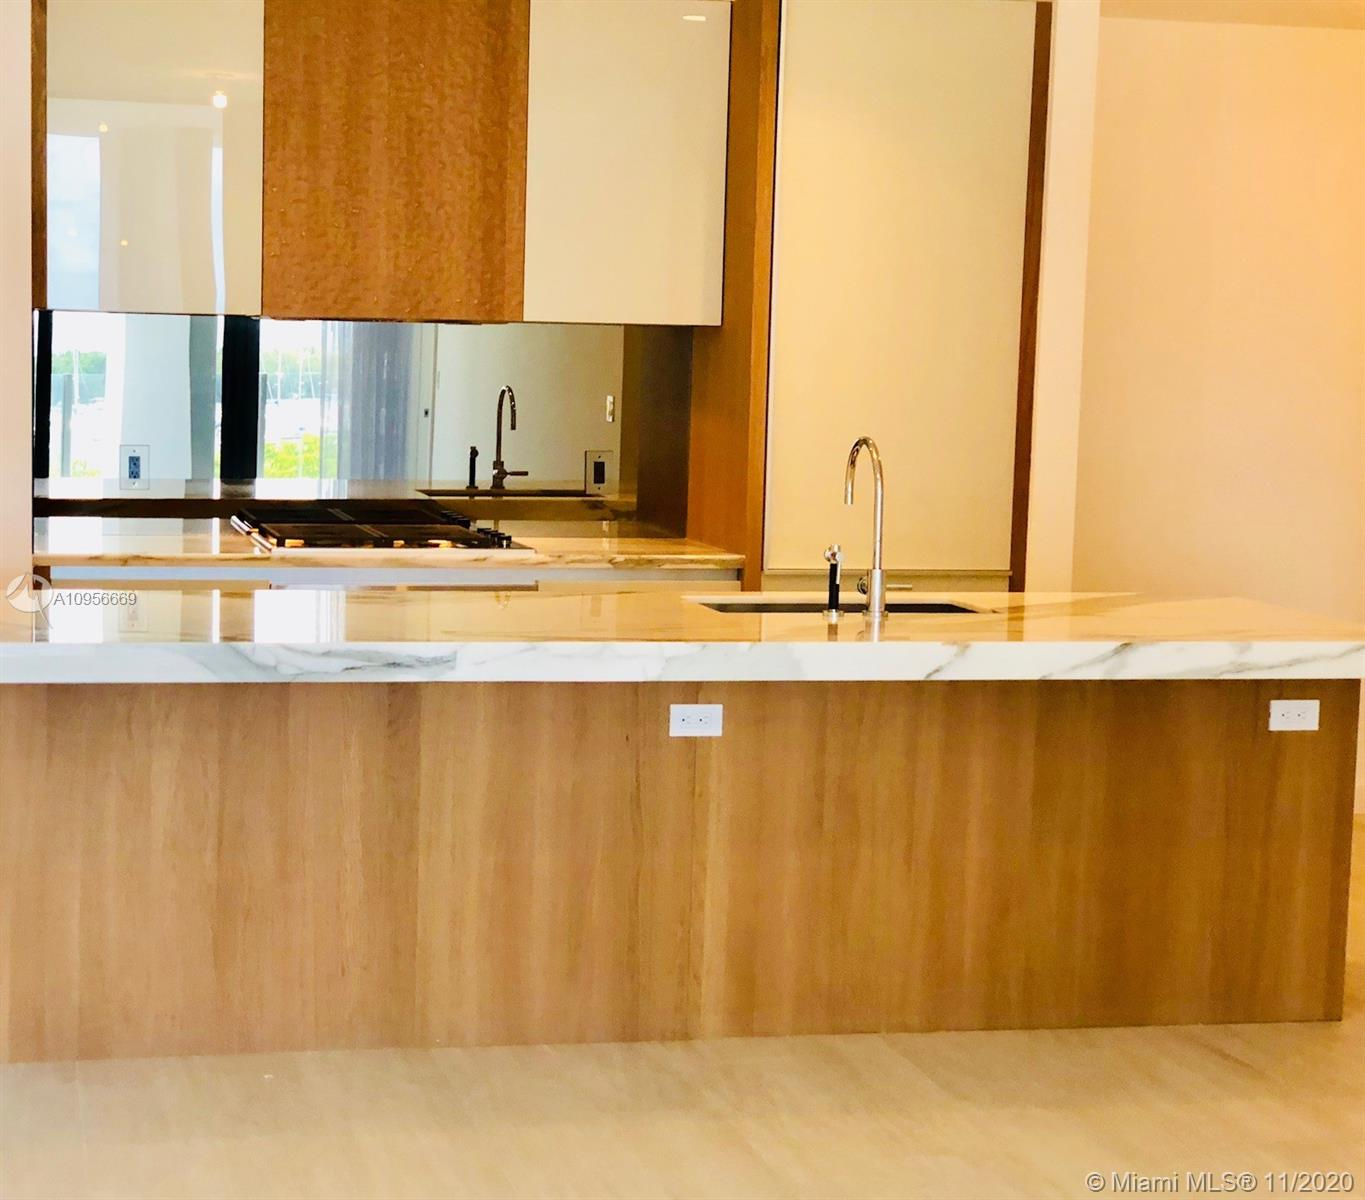 2831 S Bayshore Drive # 601, Miami, Florida 33133, 3 Bedrooms Bedrooms, ,3 BathroomsBathrooms,Residential Lease,For Rent,2831 S Bayshore Drive # 601,A10956669